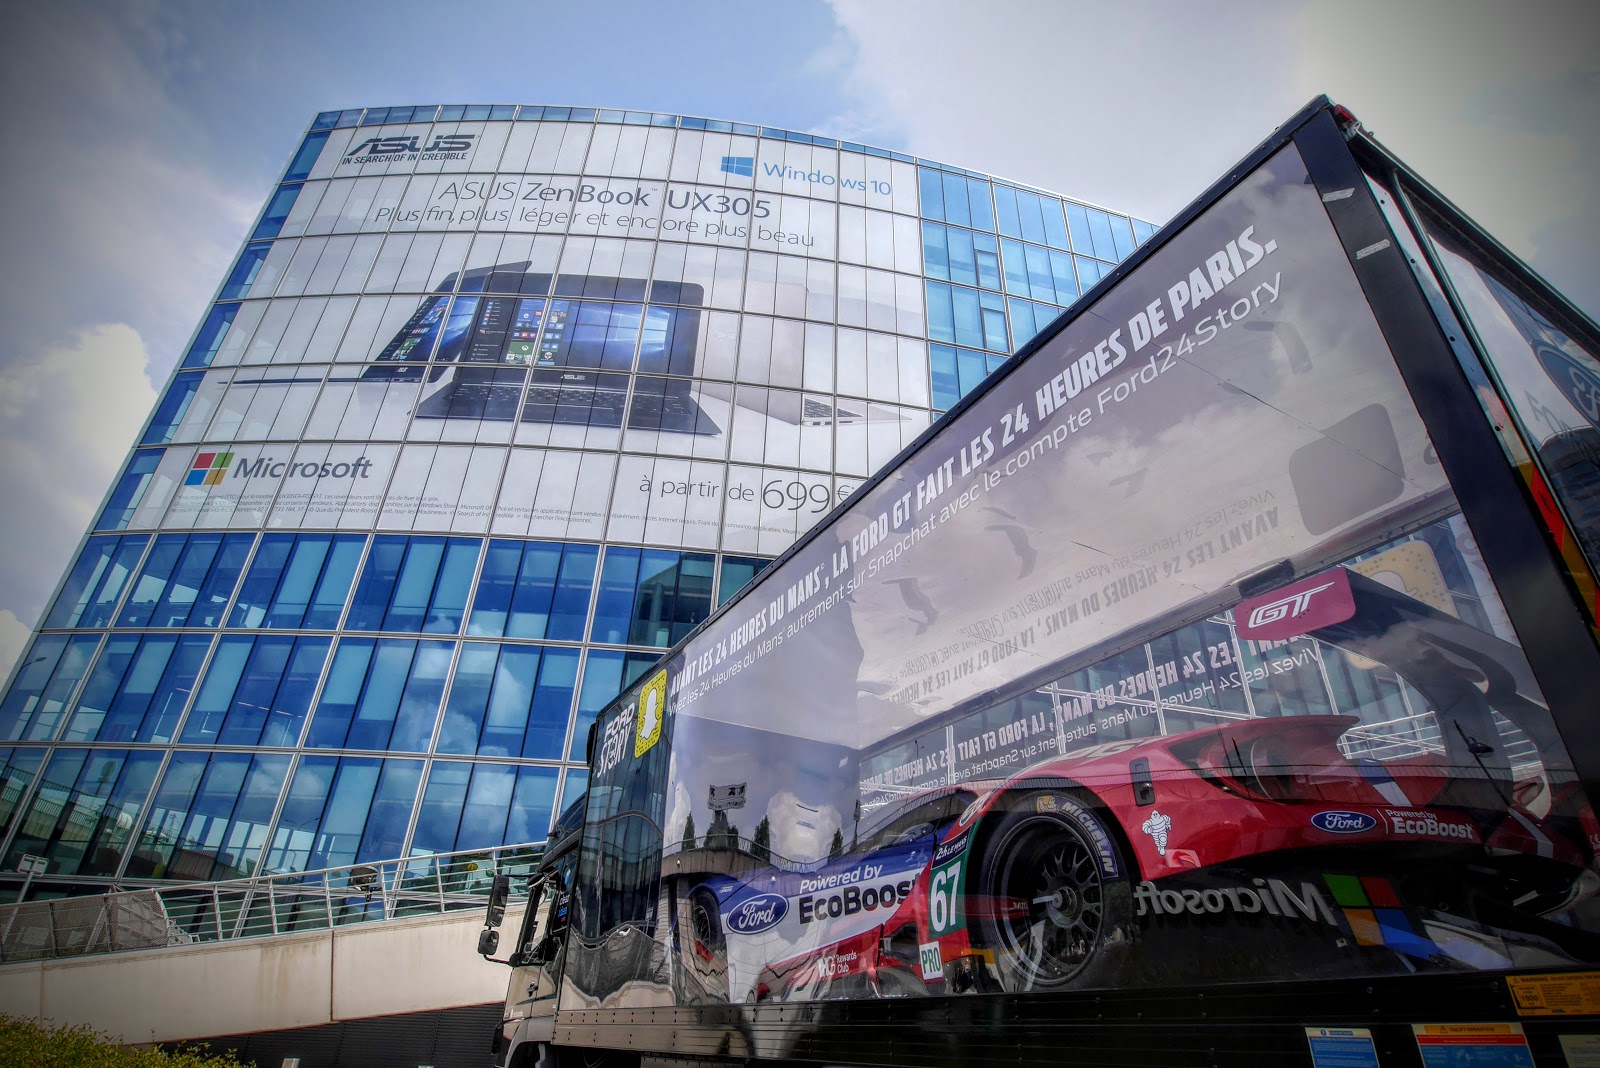 Ford Europe: The Ford GT - London, Paris and now on Xbox One